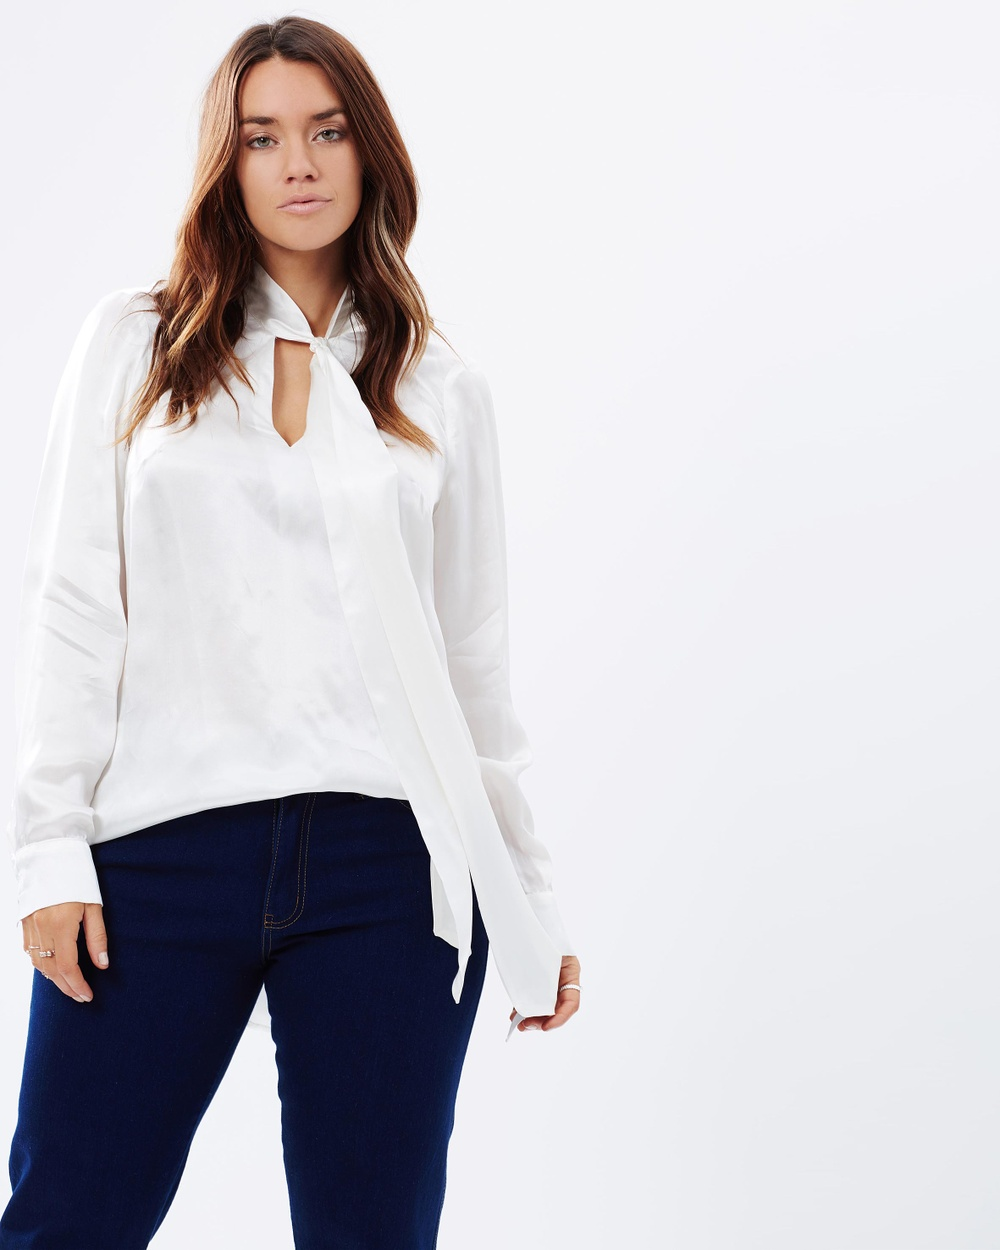 Embody Denim Peggy Top Tops Ivory Peggy Top